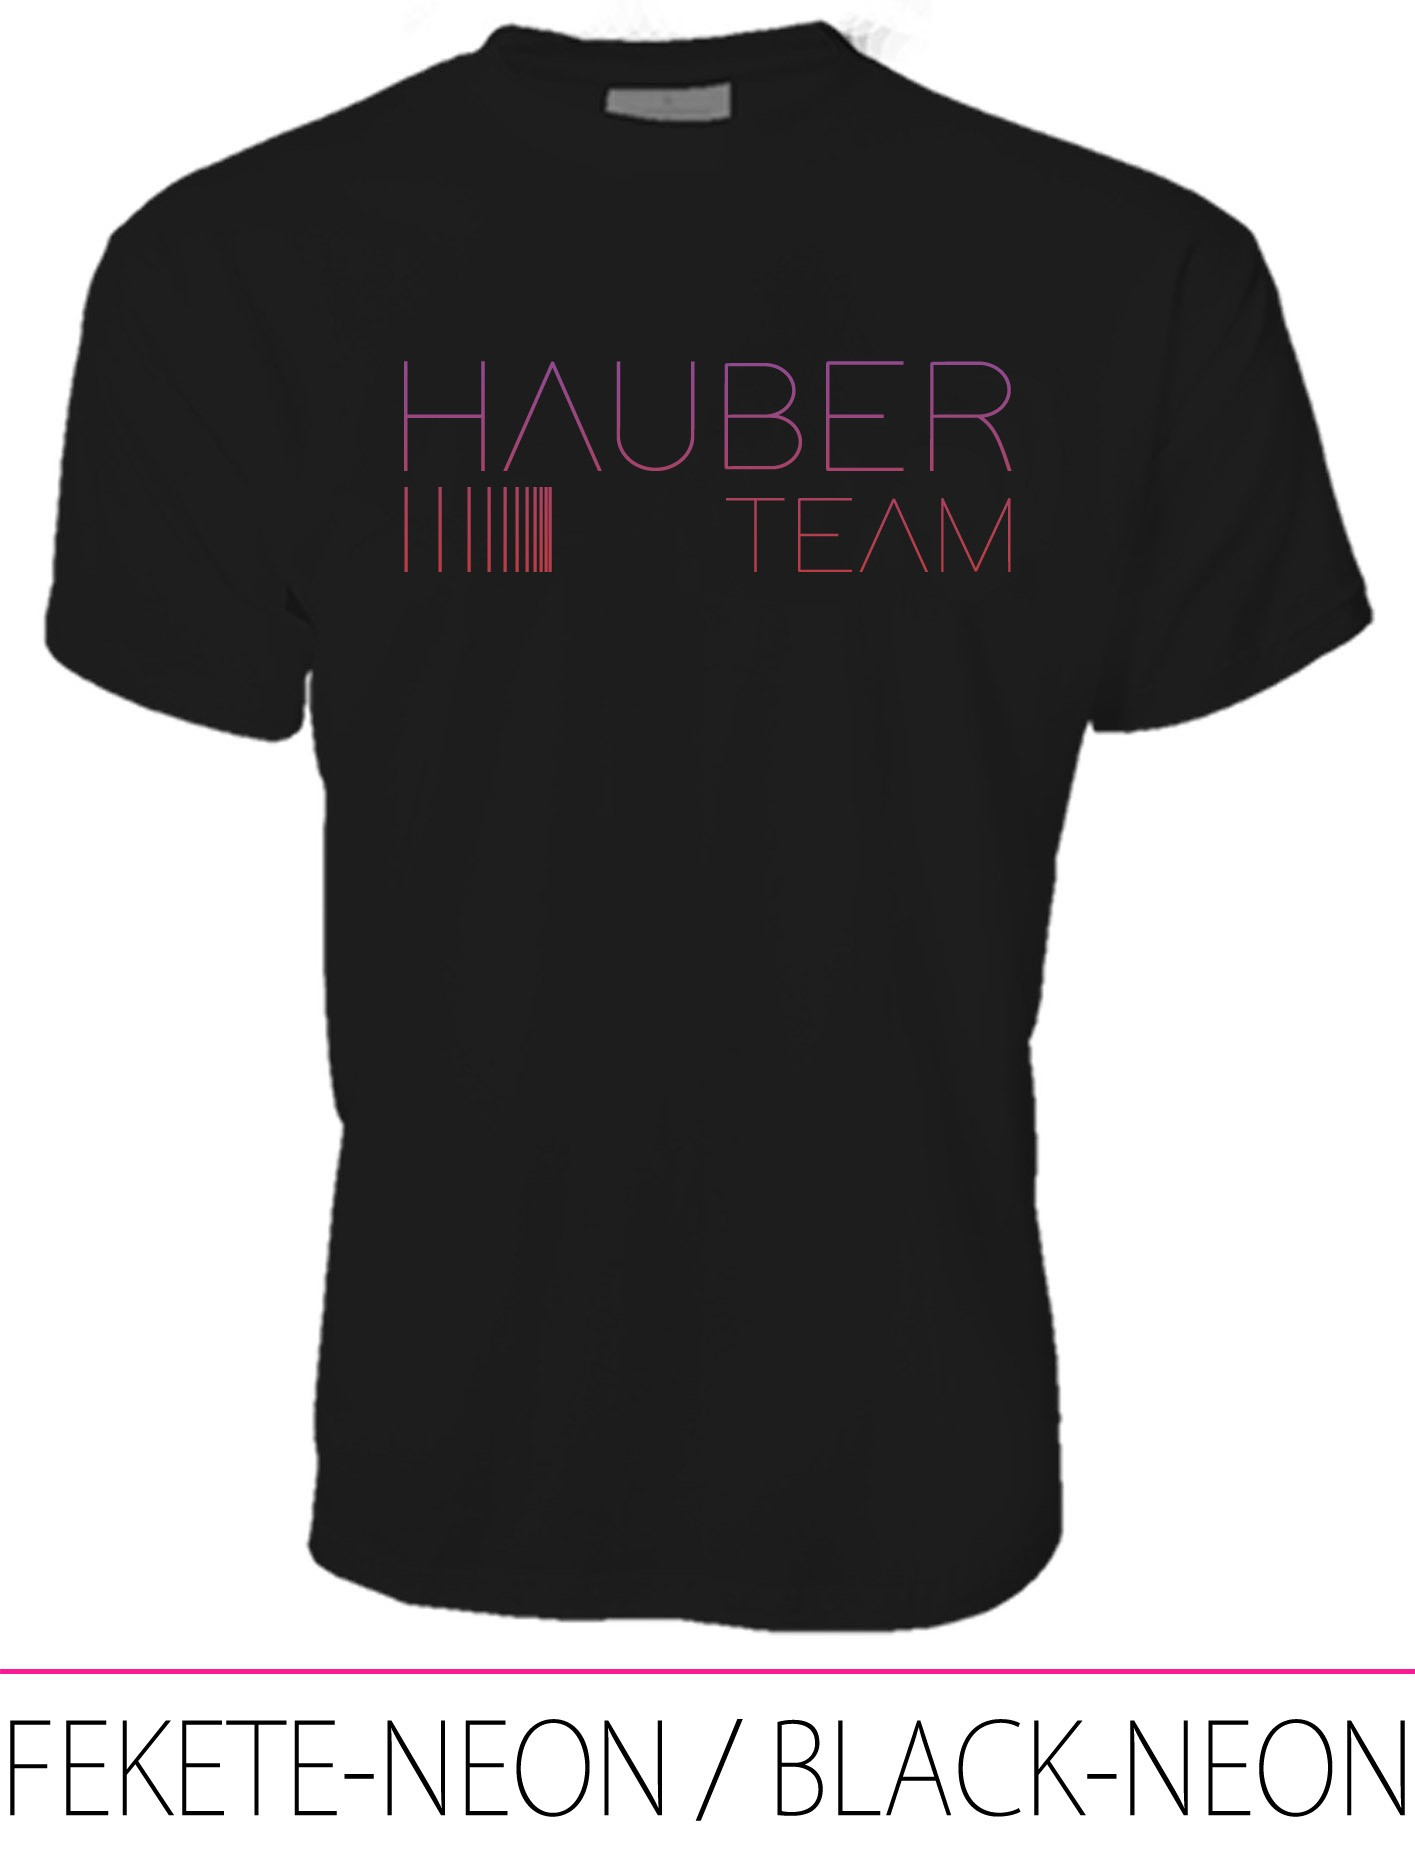 MEN CREW NECK T-SHIRT / HAUBER TEAM BLACK-NEON